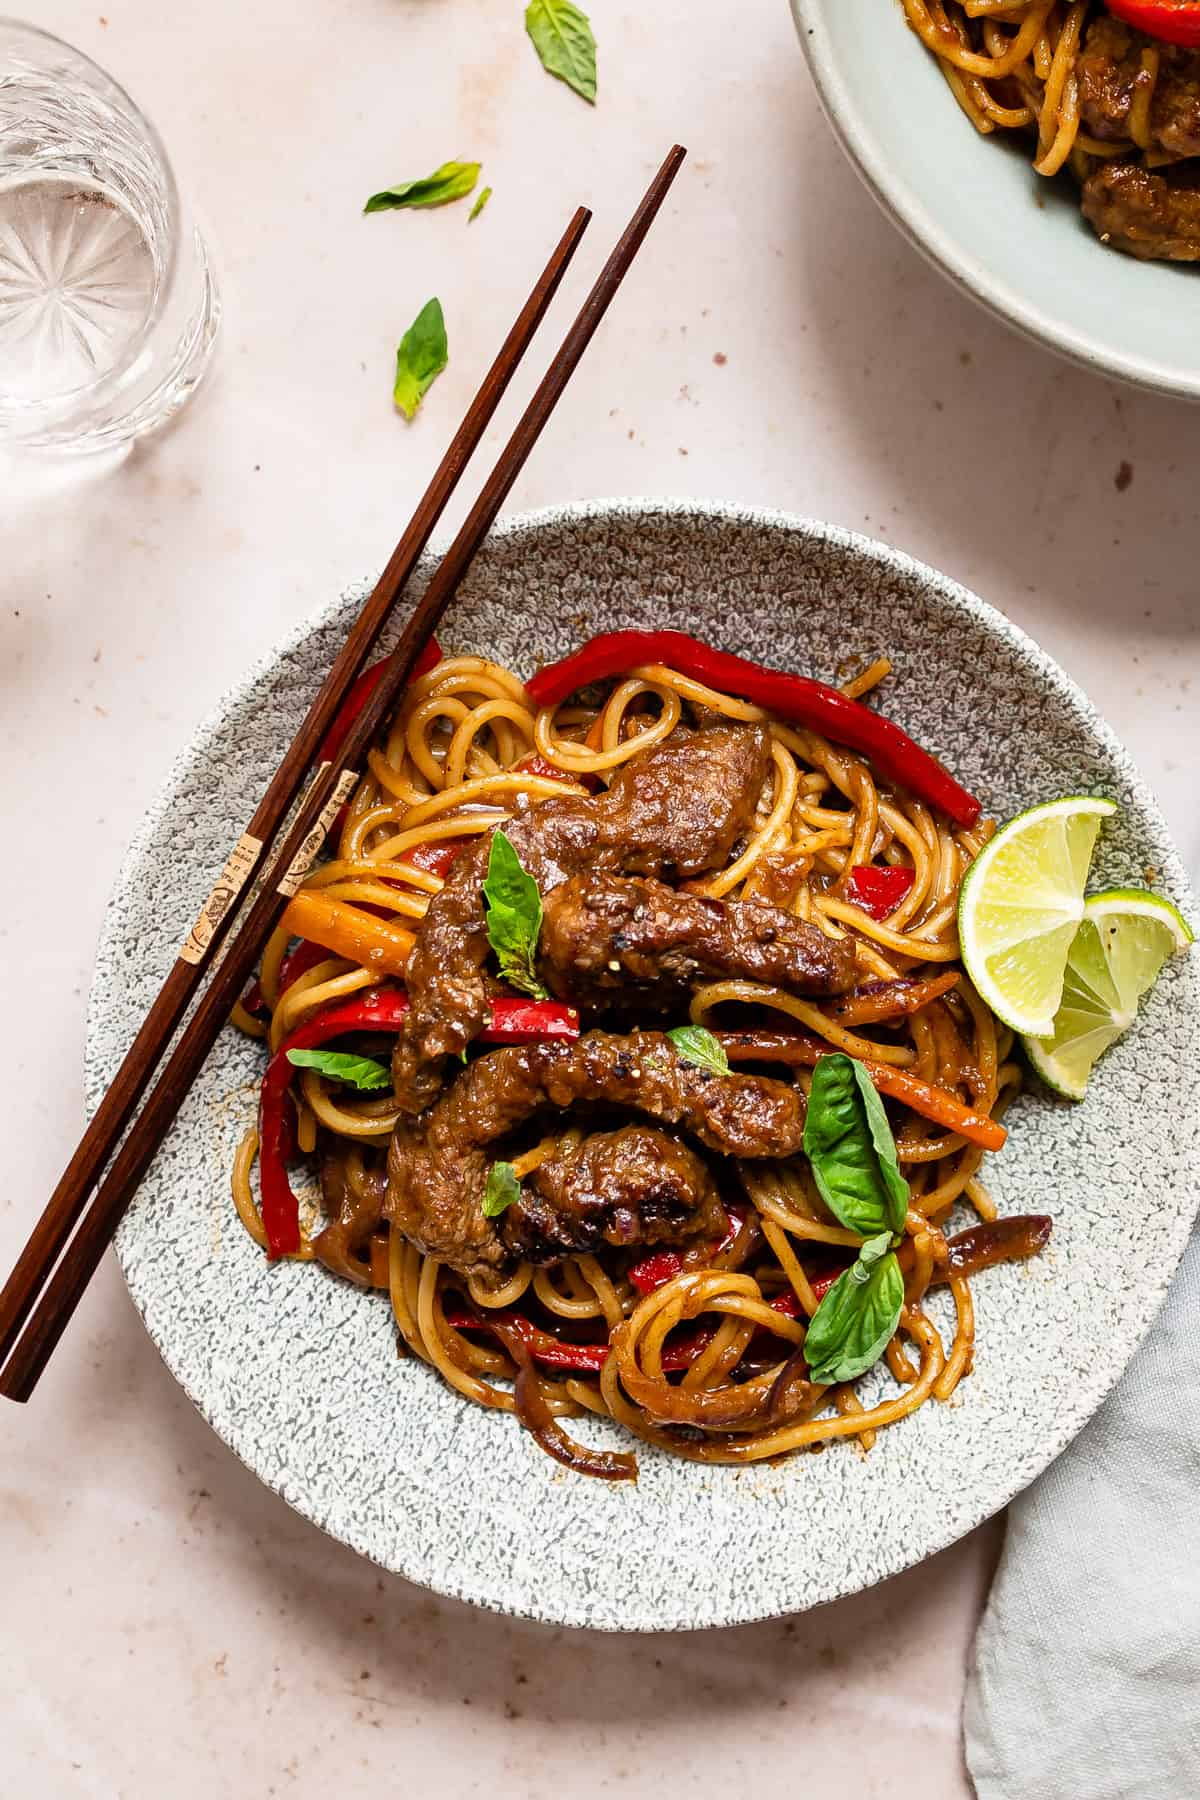 Beef in oyster sauce with noodles in a blue bowl